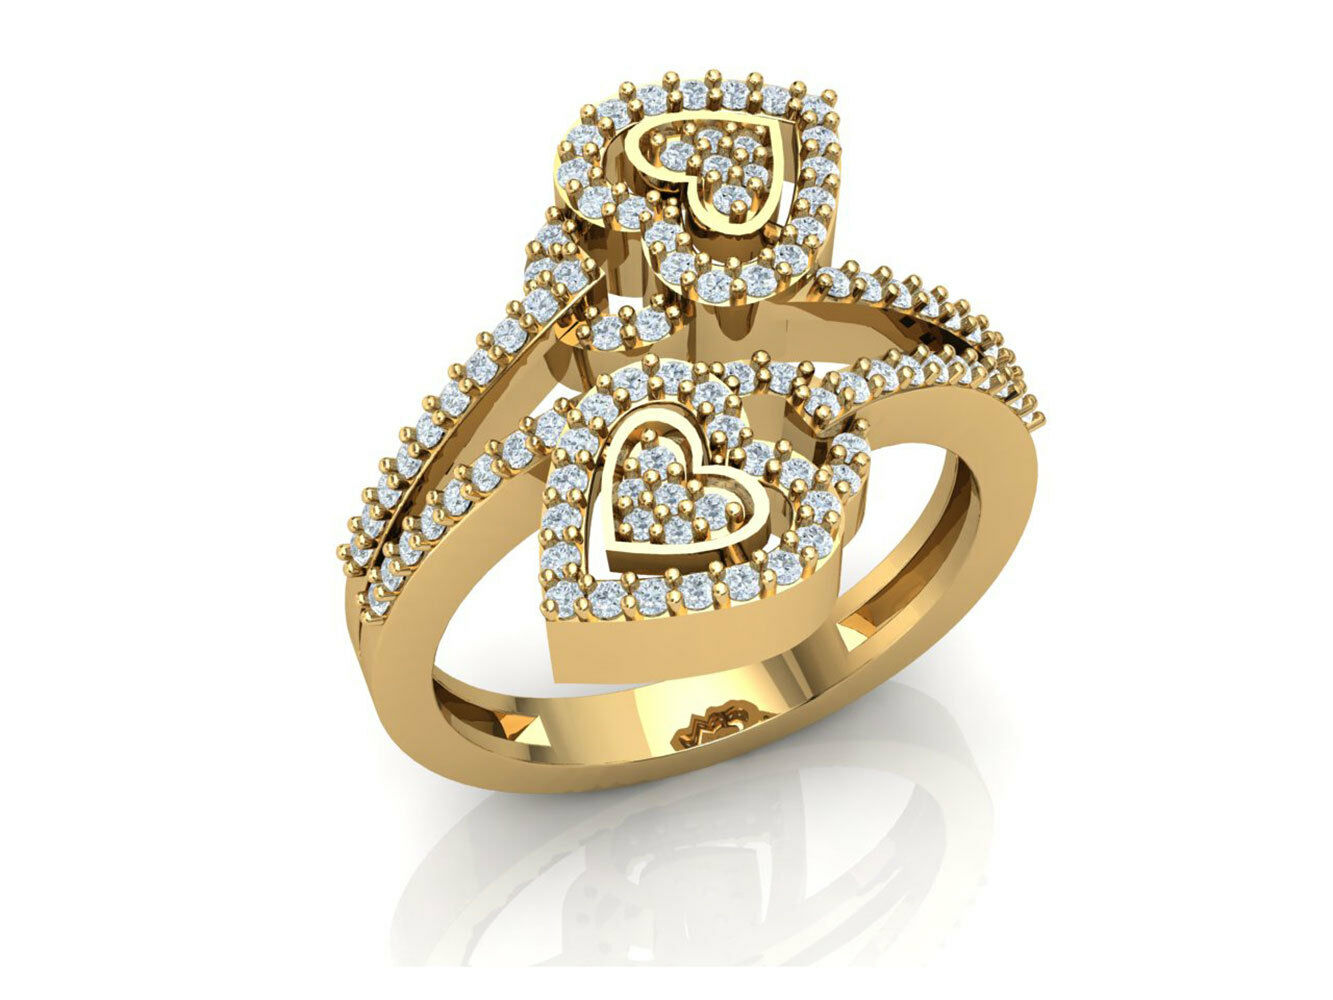 0.6ctw Round Brilliant Cut Diamond Forever Us Heart Engagement Ring 14K gold